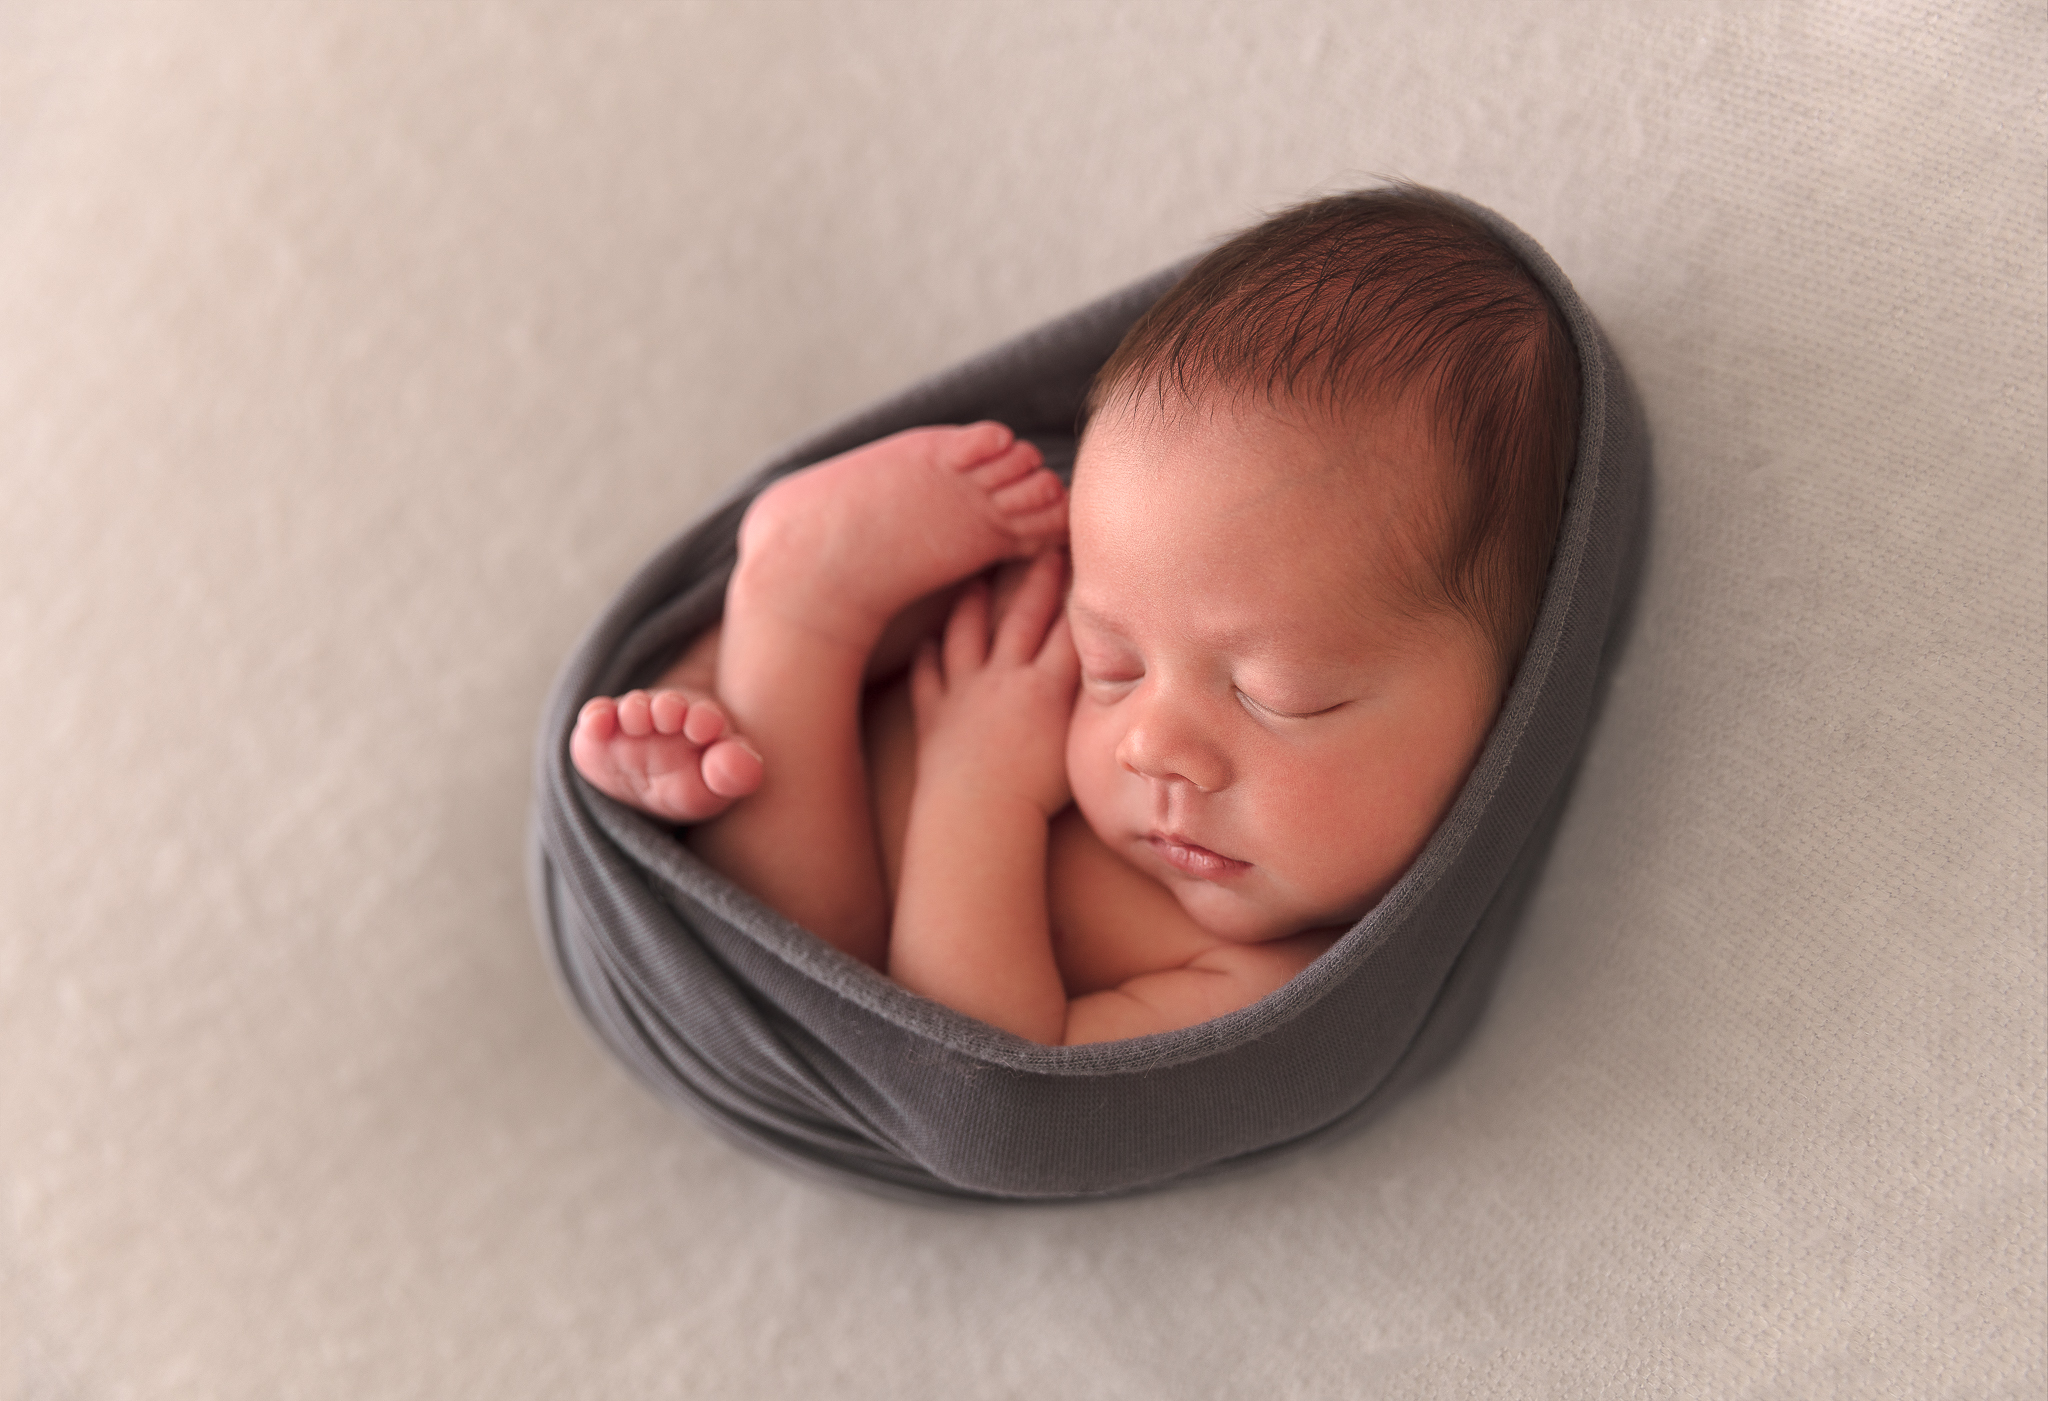 egg-wrap-baby-newborn-jcimagery-adelaide-photography